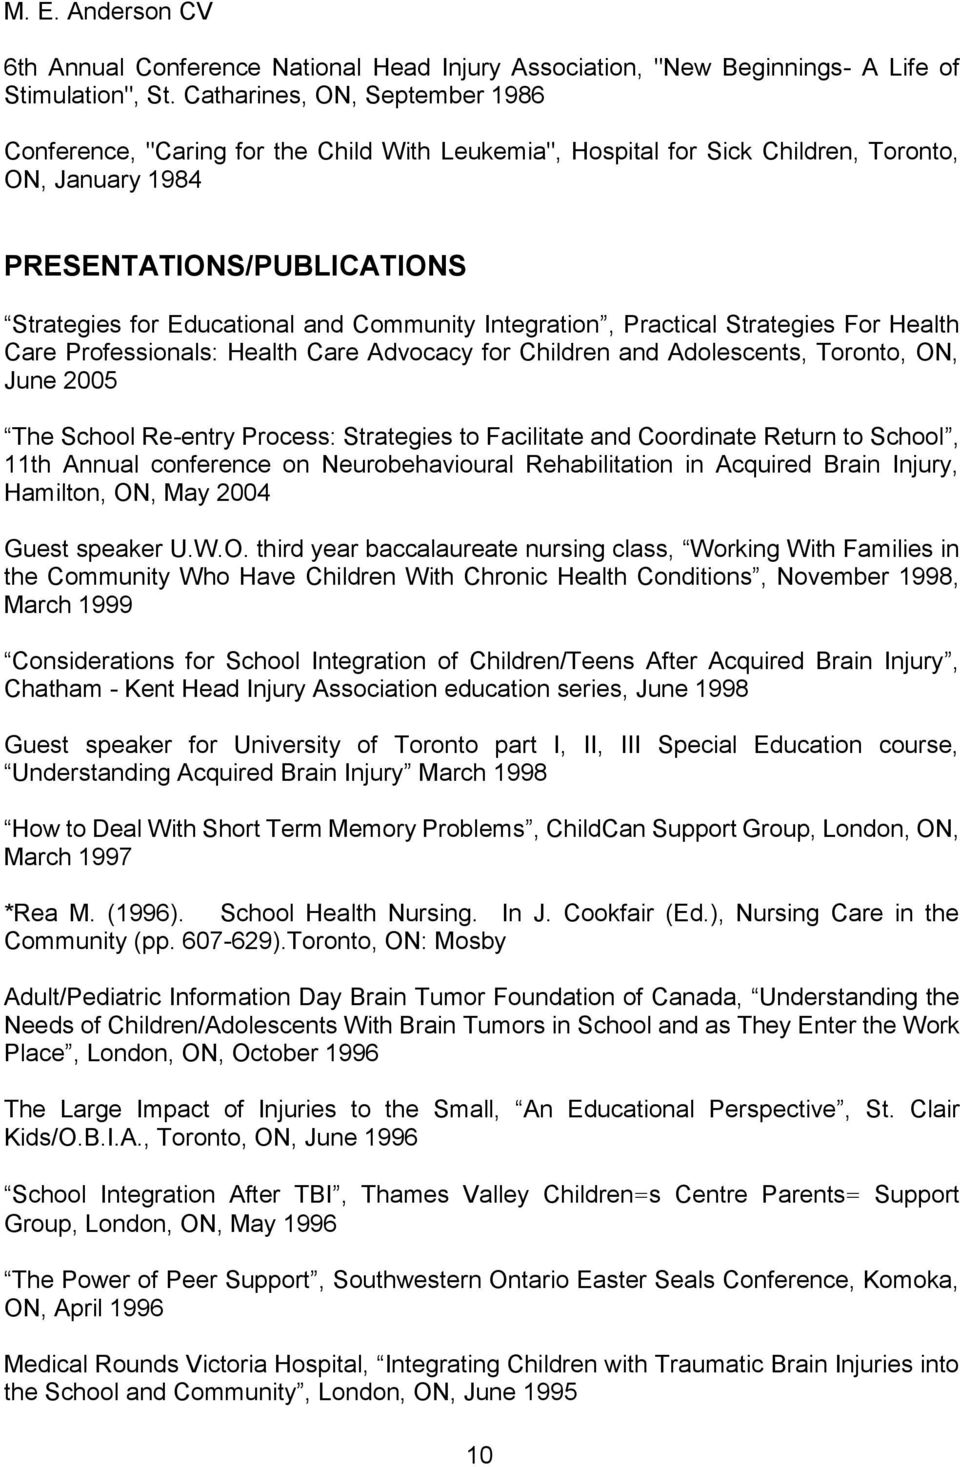 Community Integration, Practical Strategies For Health Care Professionals: Health Care Advocacy for Children and Adolescents, Toronto, ON, June 2005 The School Re-entry Process: Strategies to